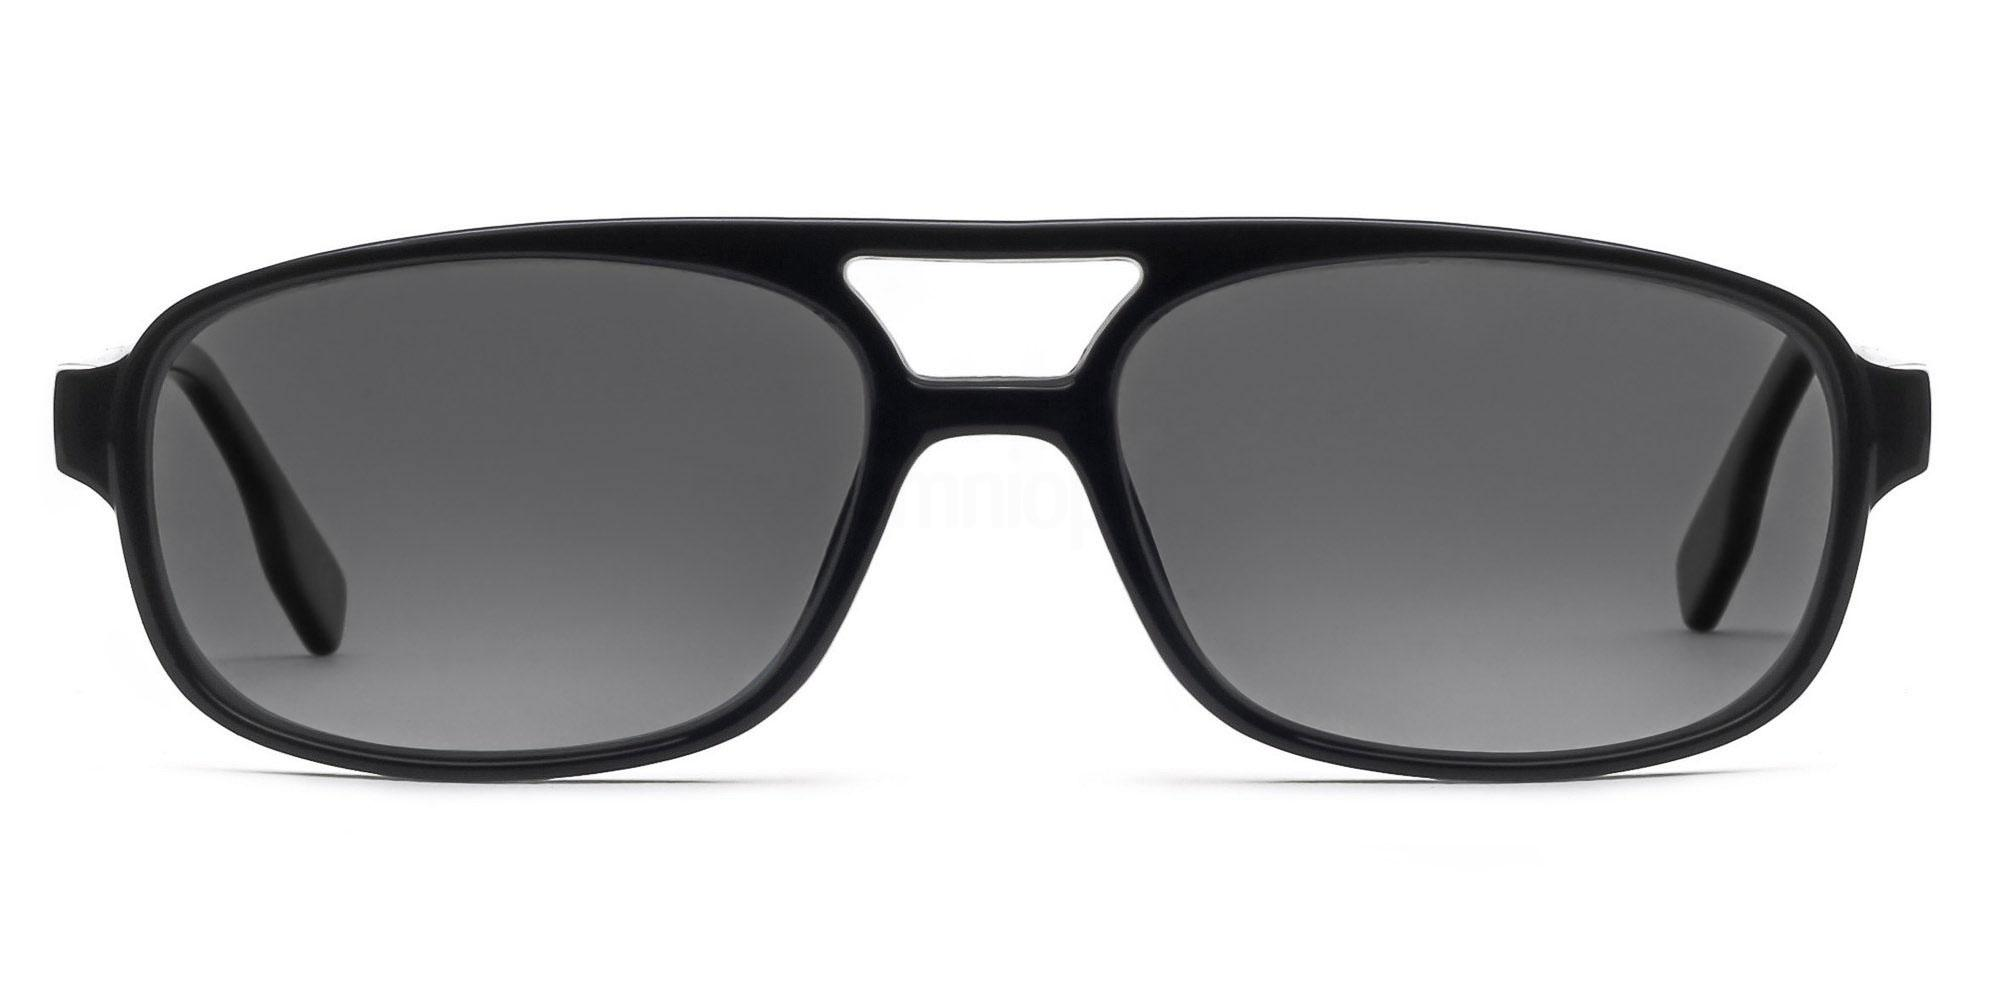 C01 Polarized Grey P2395 - Black (Polarized) Sunglasses, Savannah